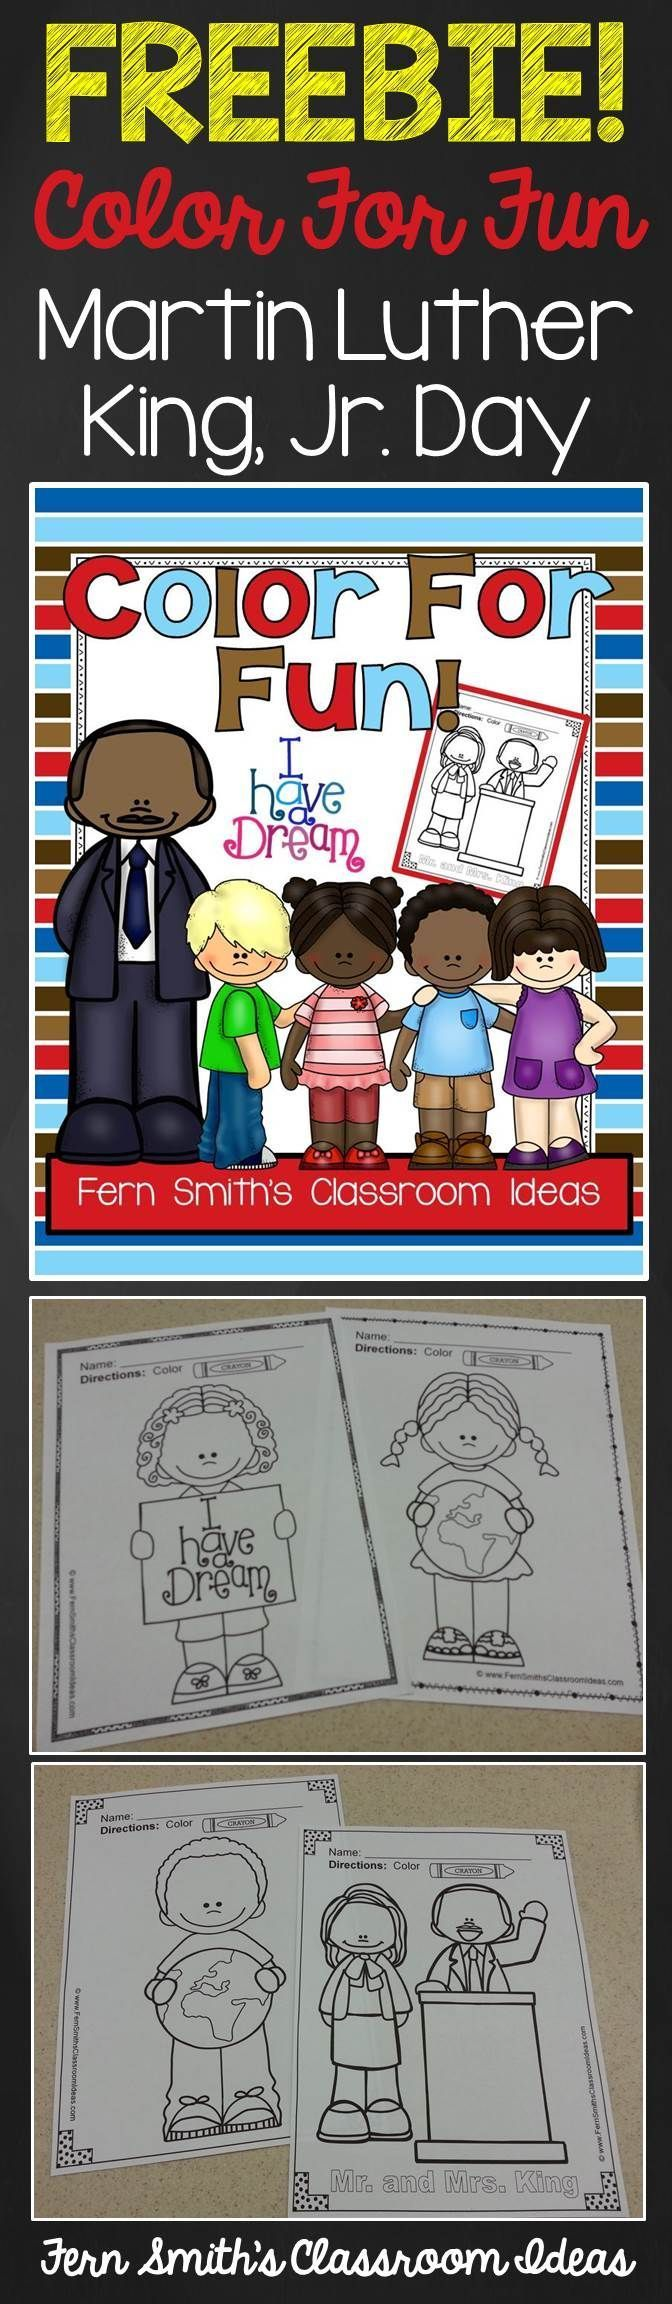 FREE Martin Luther King Jr Color For Fun Printable Coloring Pages Freebie